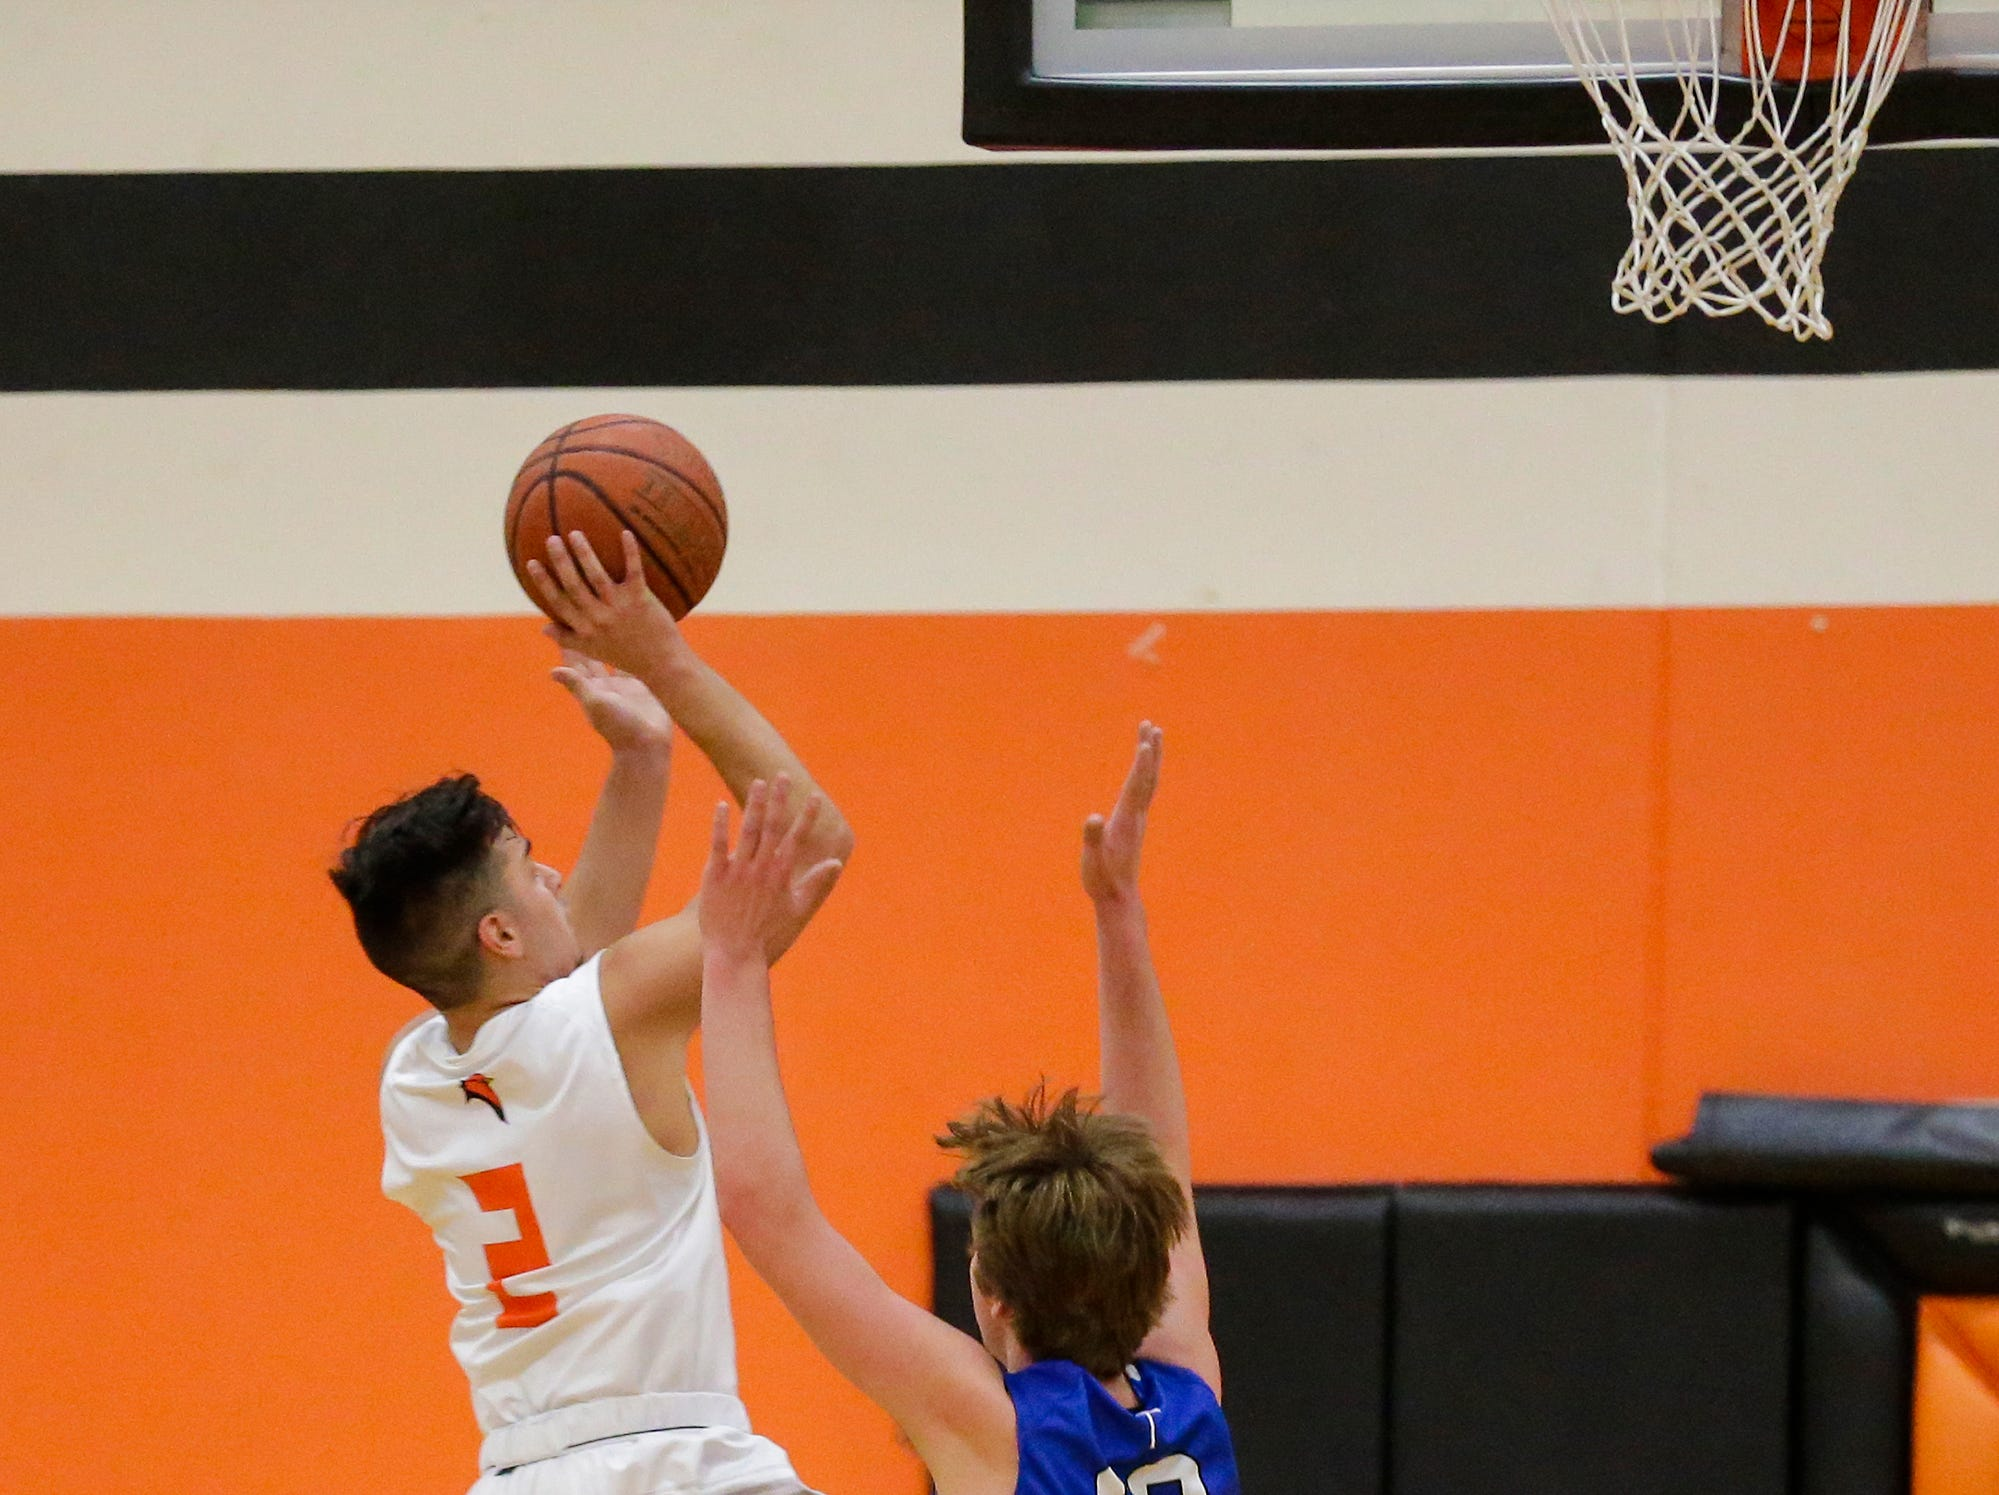 North Fond du Lac High School boys basketball's Tony Reyes goes up for a basket against St. Mary's Springs Academy's Aiden Ottery during their game Friday, December 7, 2018 in North Fond du Lac, Wisconsin. Doug Raflik/USA TODAY NETWORK-Wisconsin